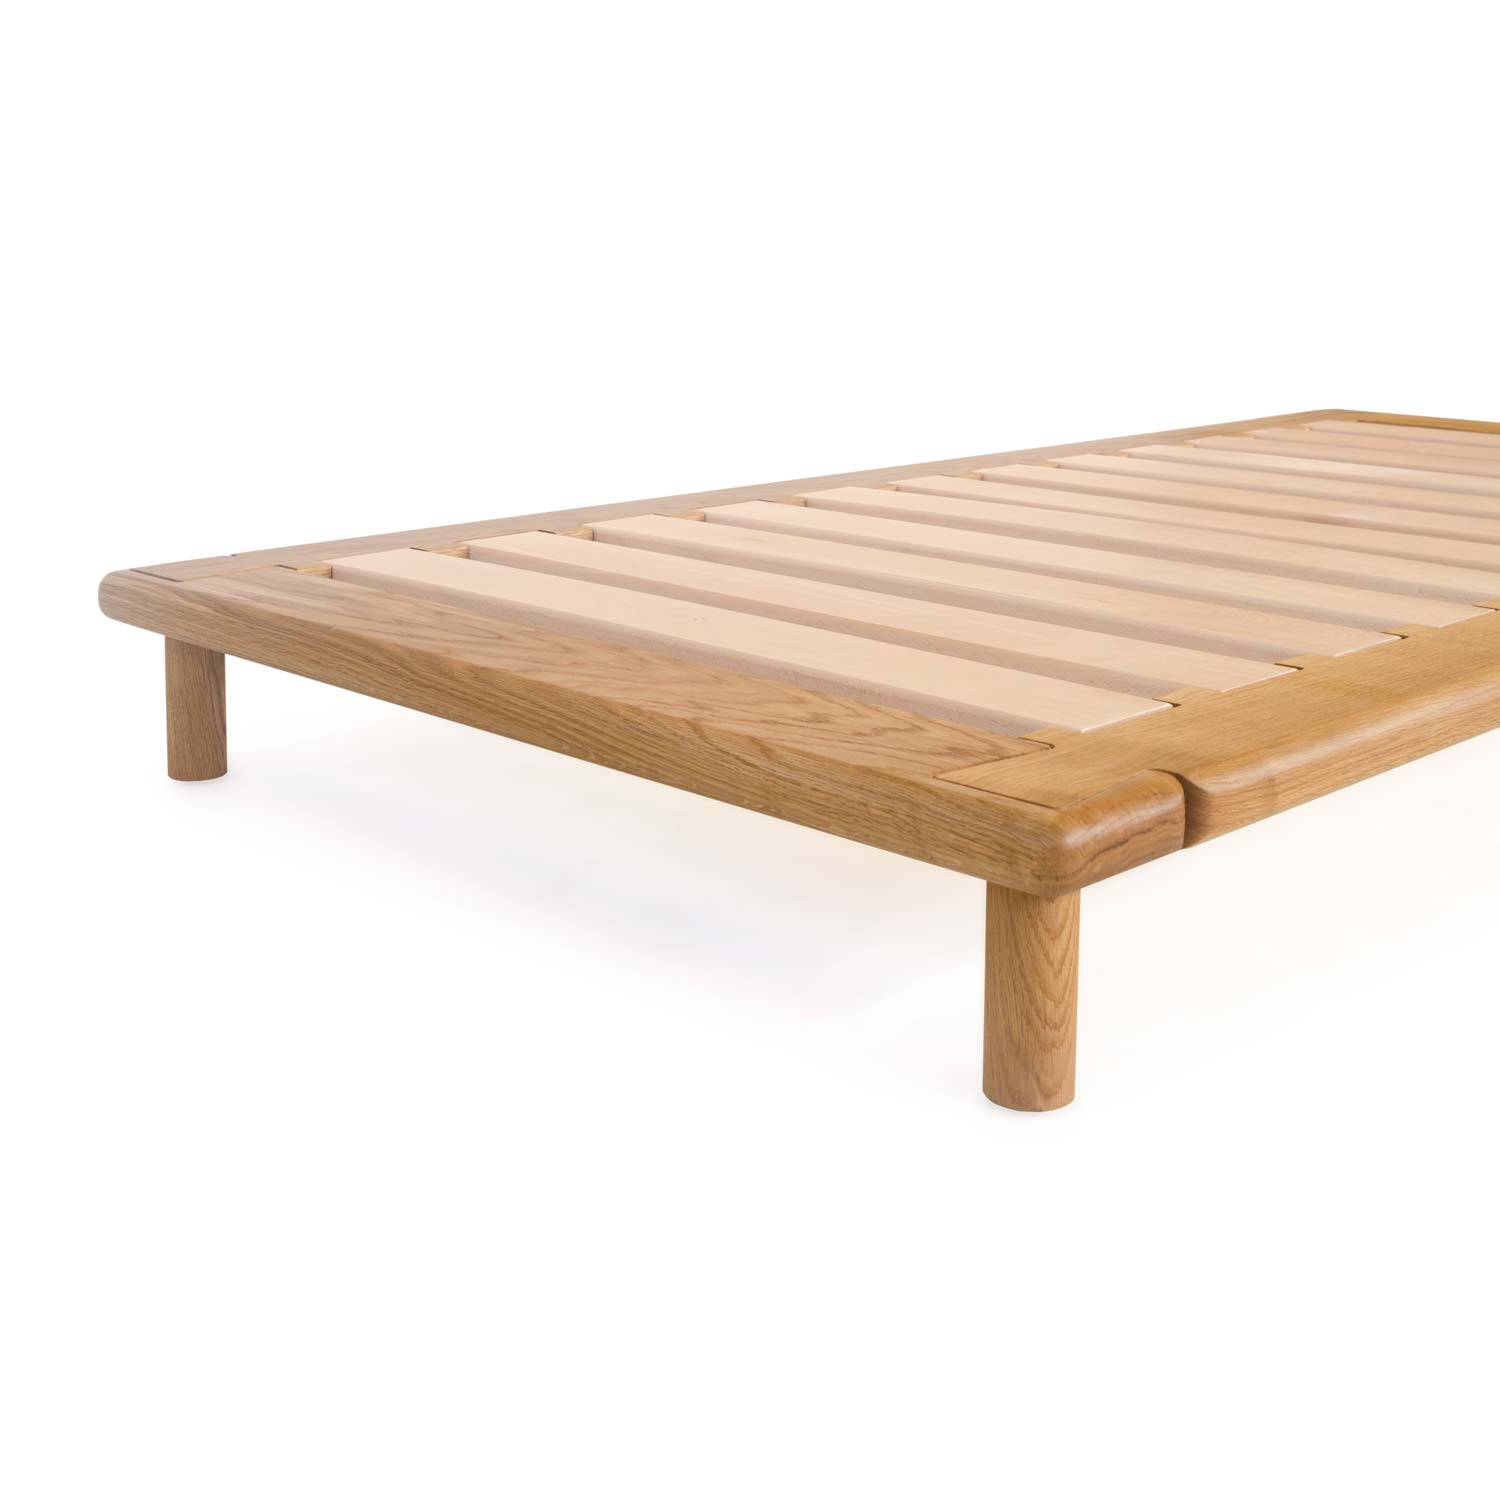 Oak Platform Bed Without A Headboard Easy Shipping Assembly